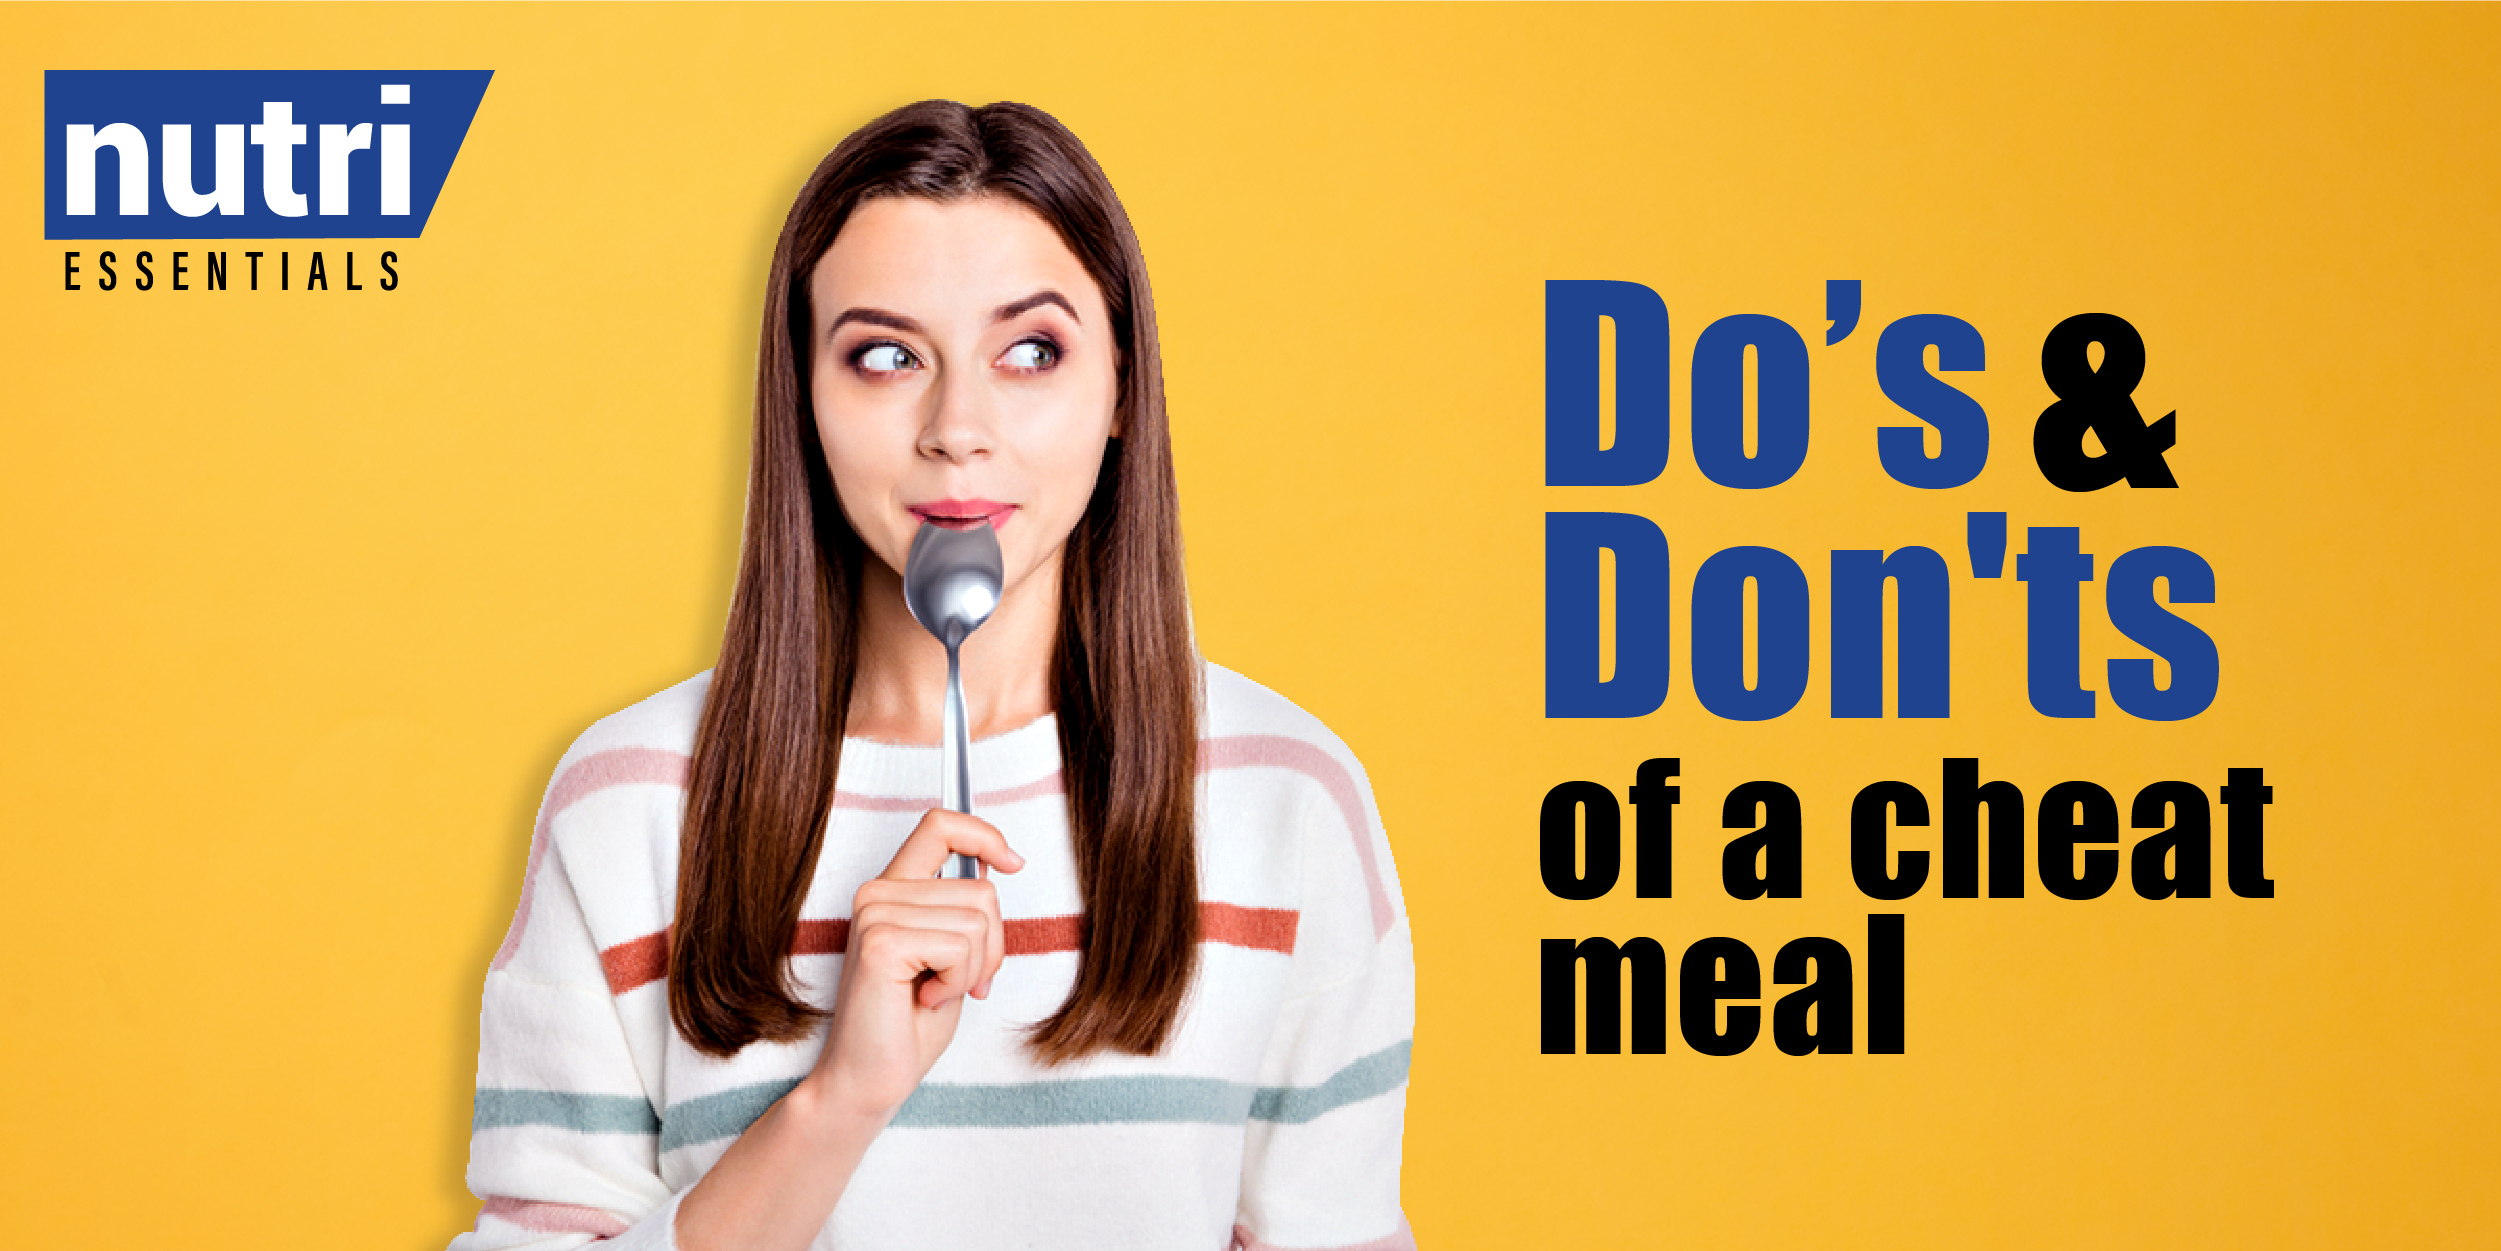 Do's and Don'ts of a Cheat Meal